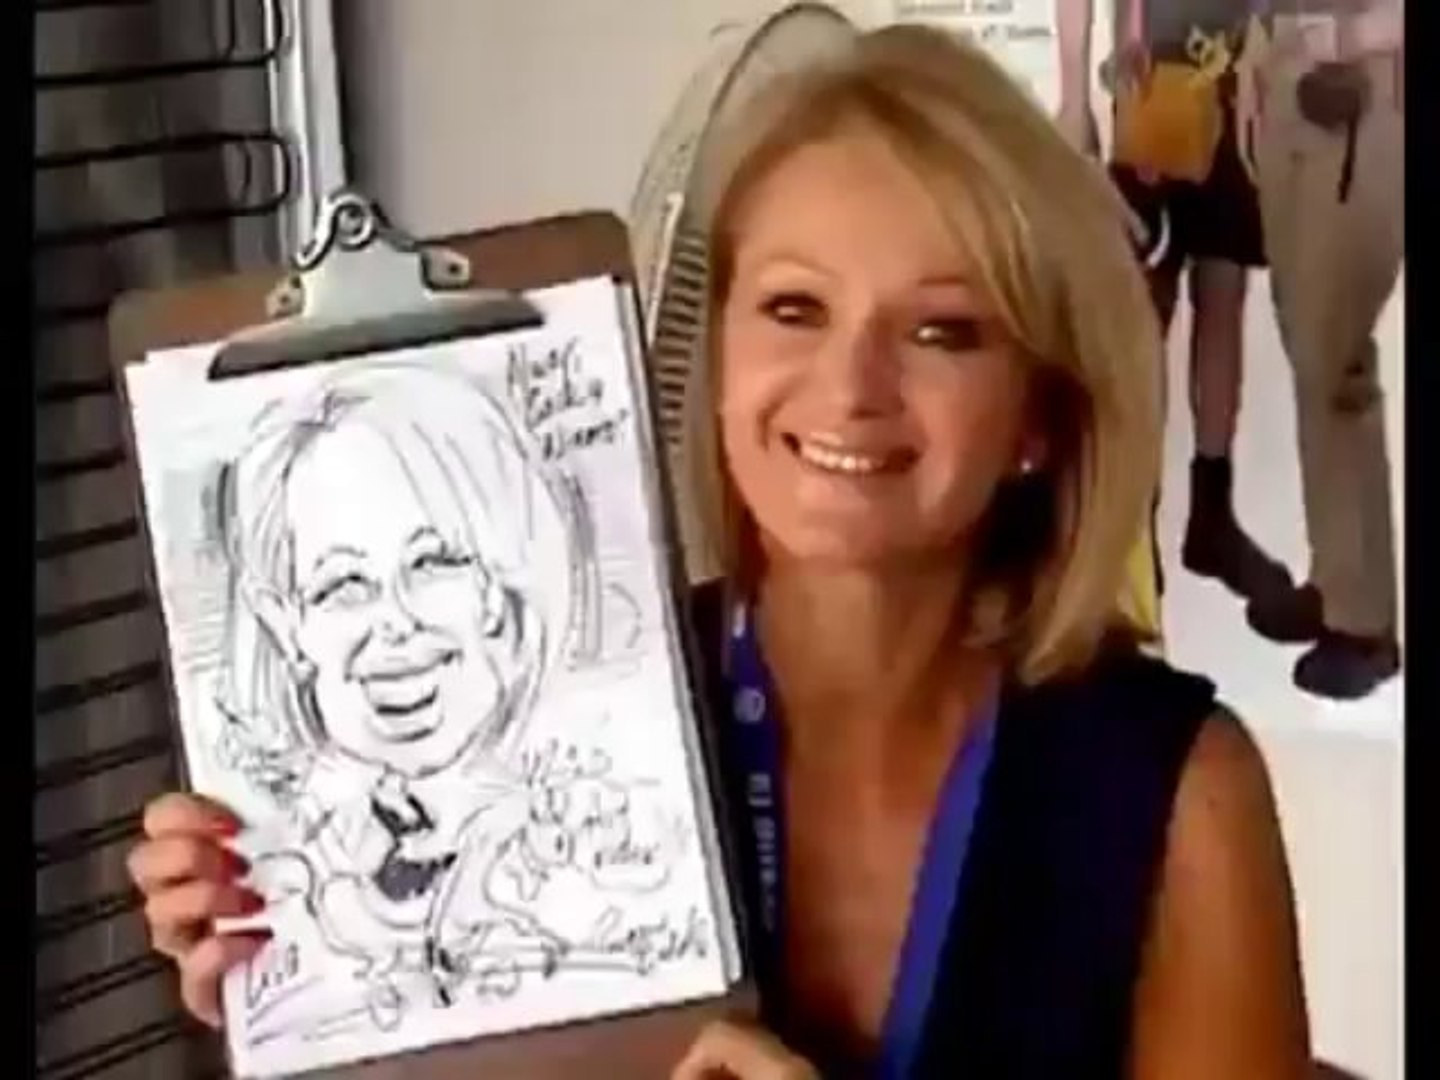 learn how to draw caricatures of people - learn to draw caricatures